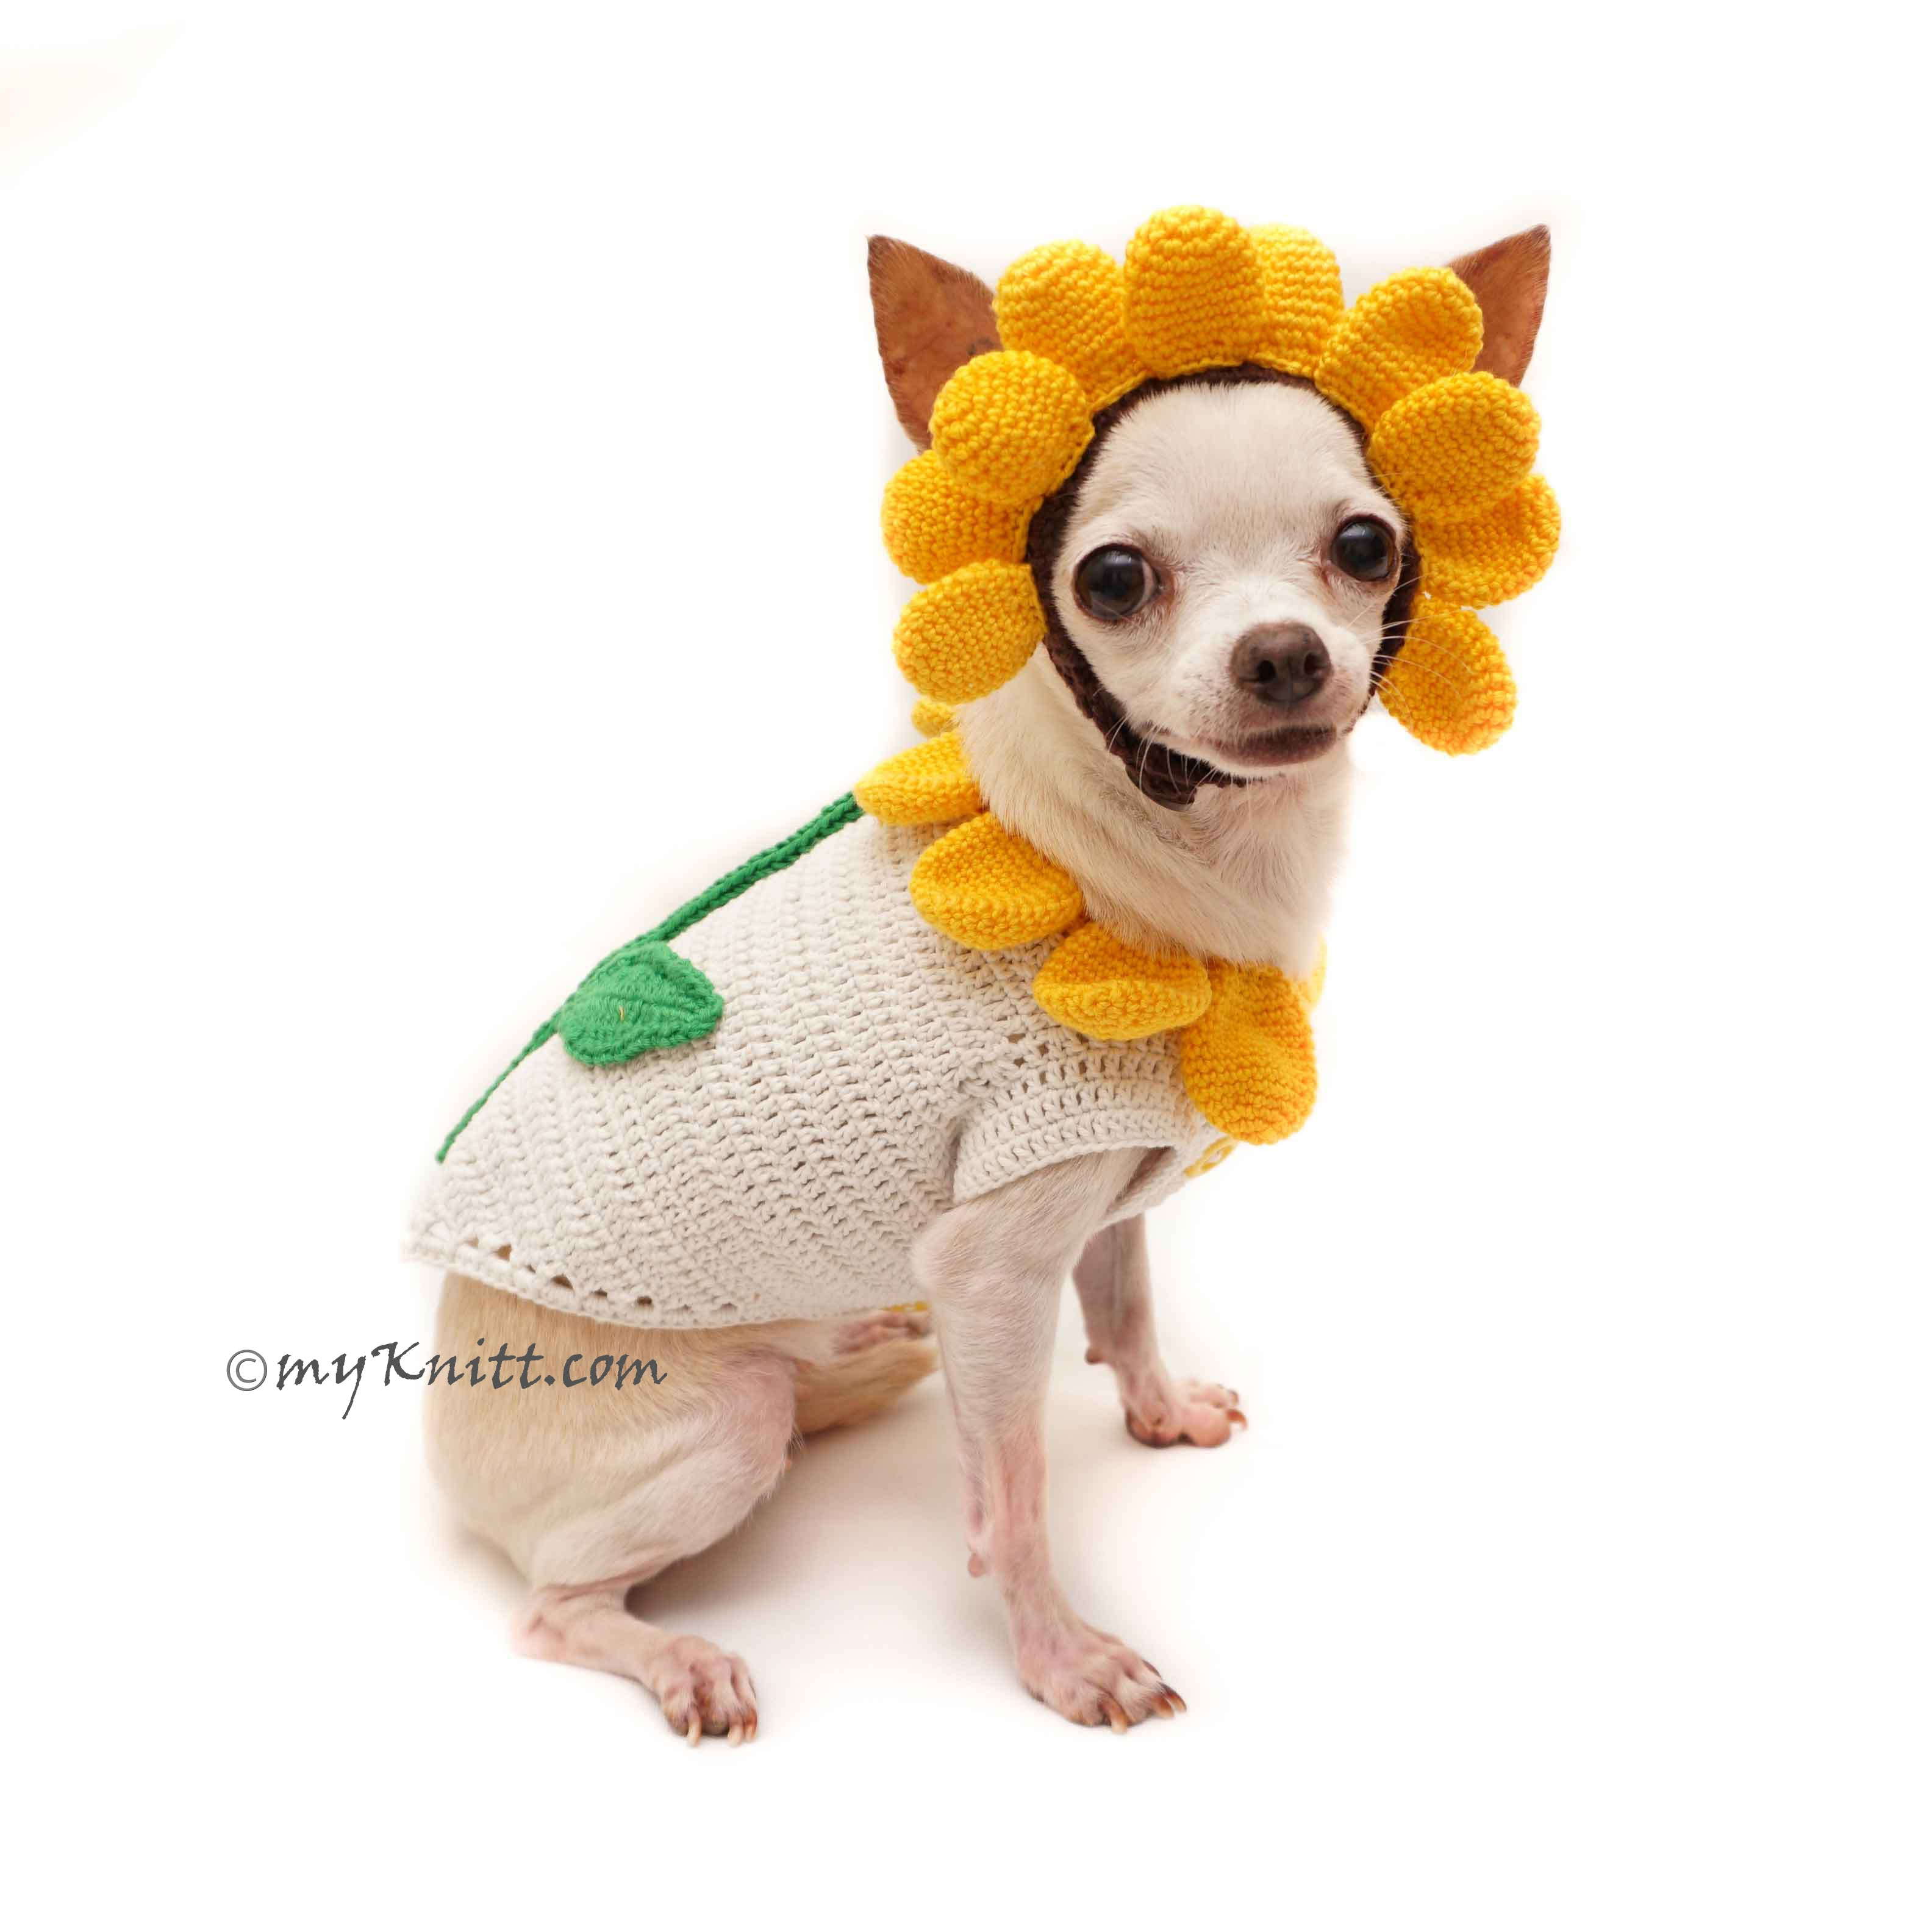 Charming Sunflower Costume For Dogs Cute Pet Halloween Costume DF94